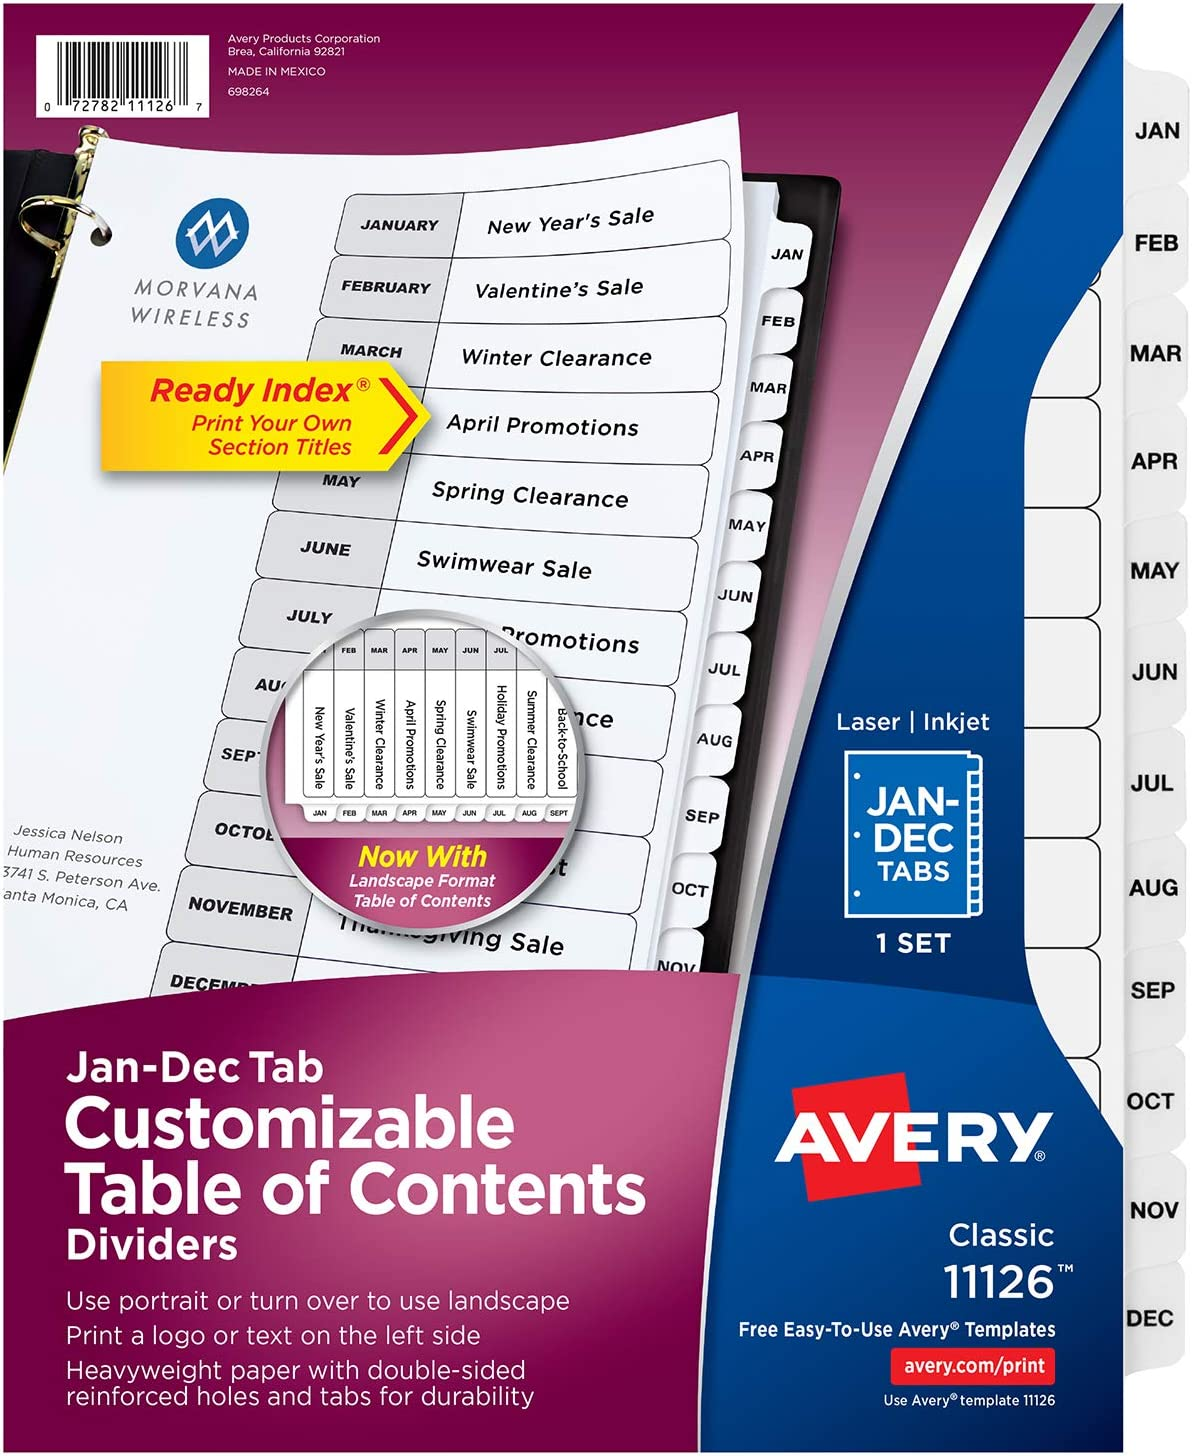 1 Set 11307 Avery Preprinted Dividers with JAN-DEC Tabs